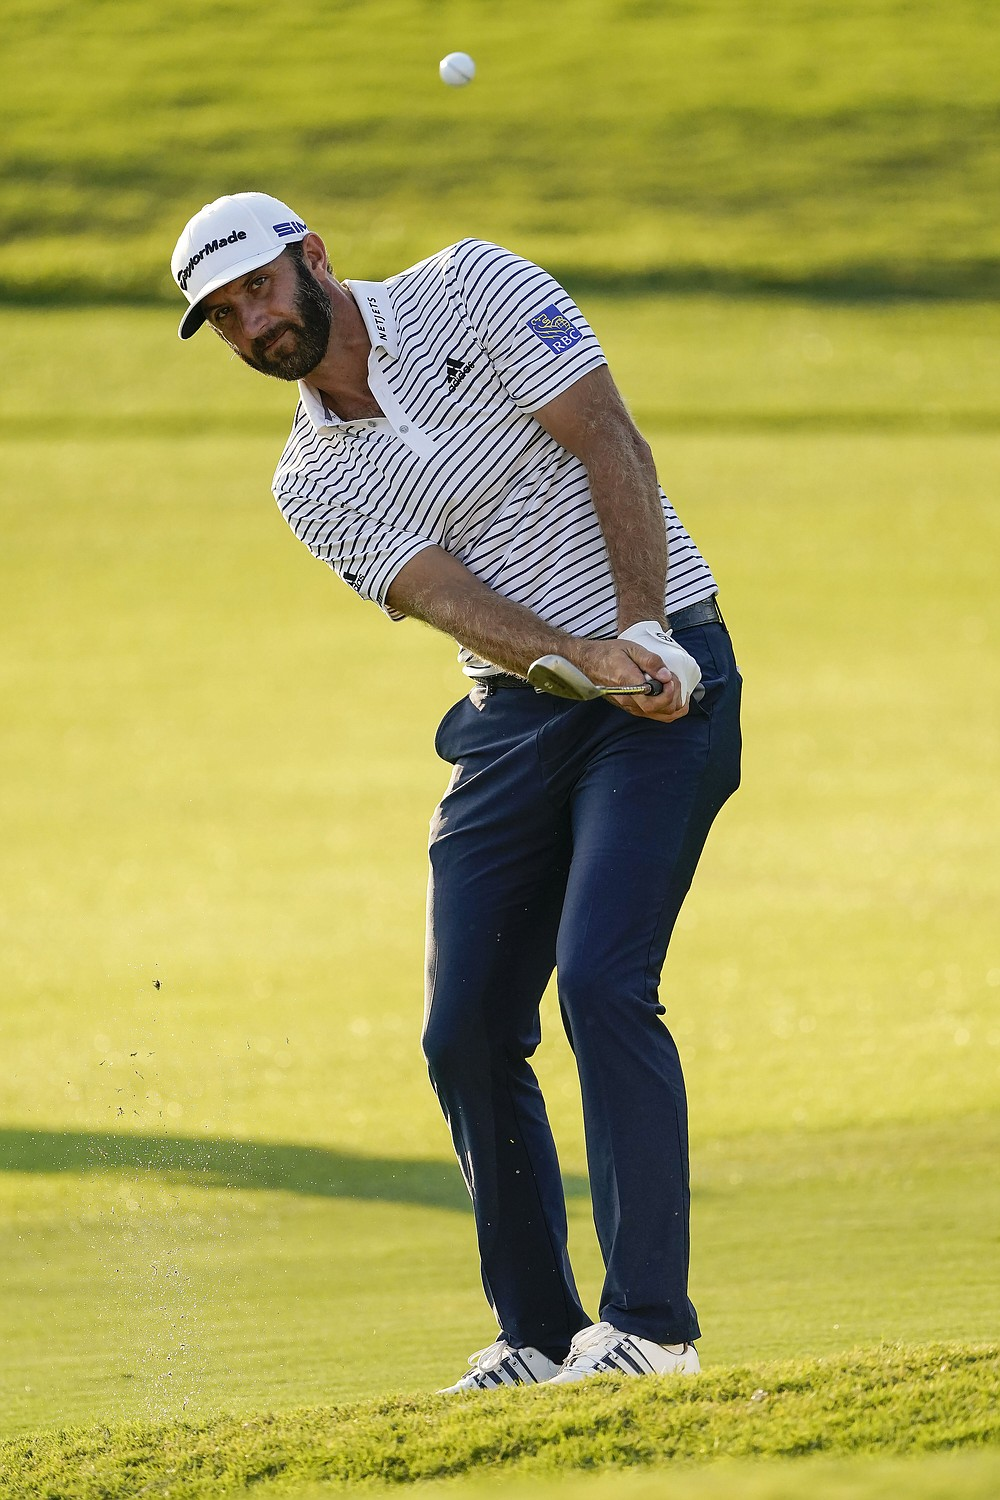 Dustin Johnson chips to the green on the 18th hole during the third round of the Tour Championship golf tournament at East Lake Golf Club in Atlanta, Sunday, Sept. 6, 2020. (AP Photo/John Bazemore)